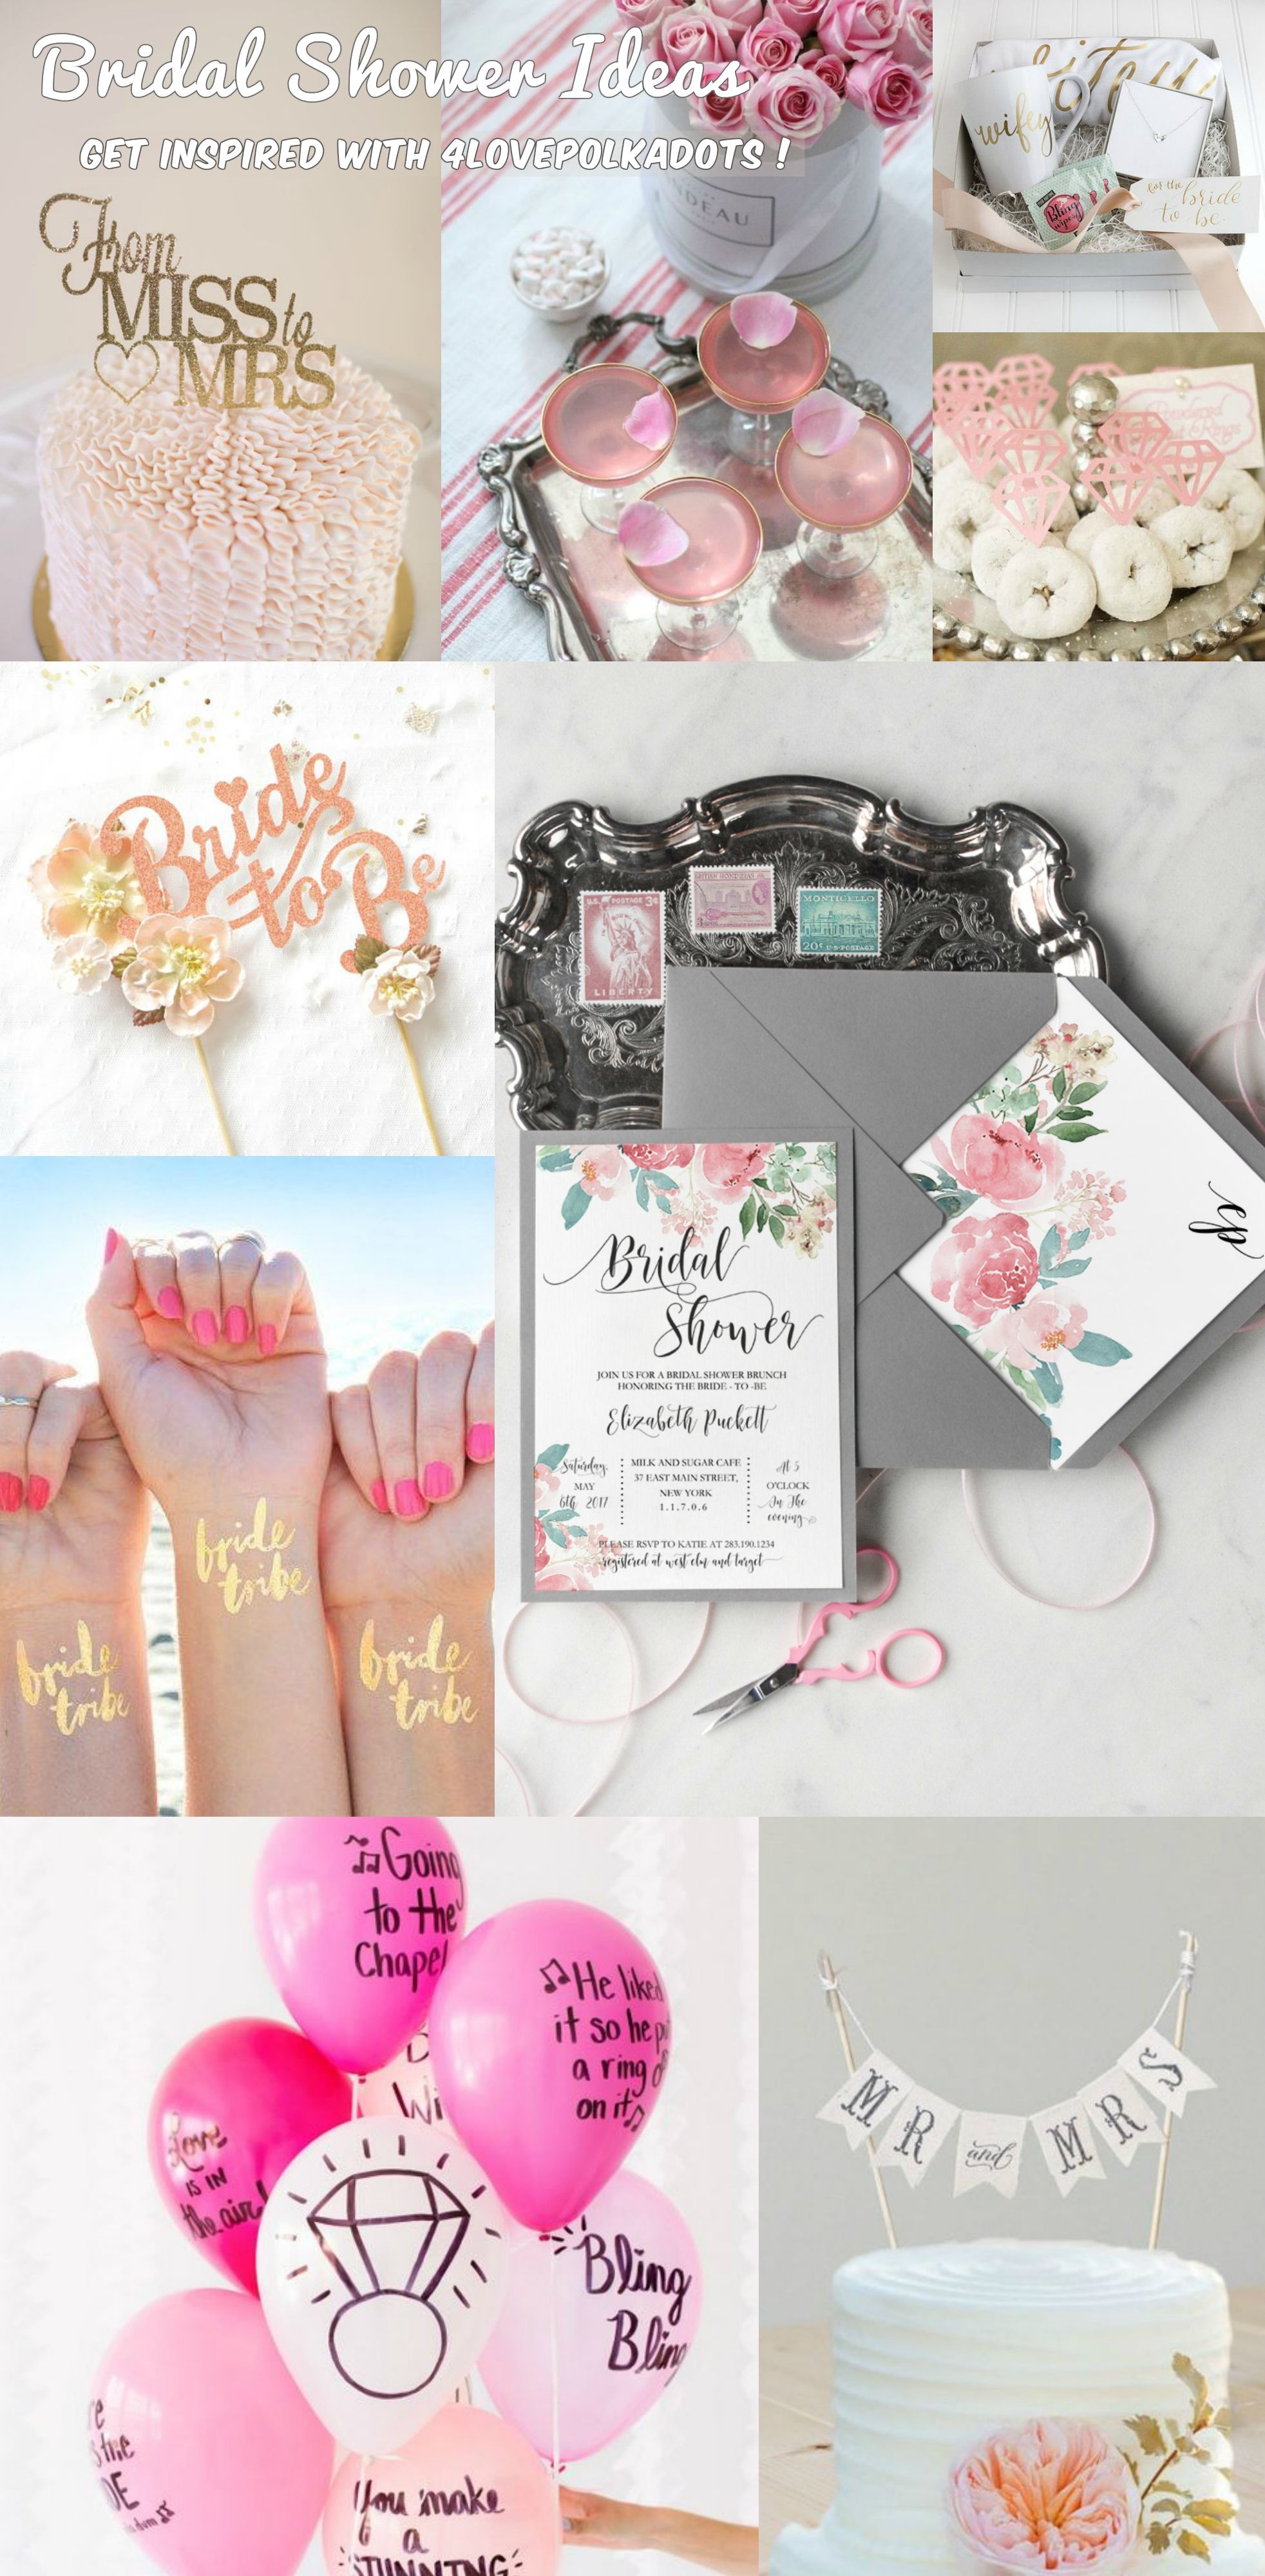 bridal shower invitation pictures%0A Invite your best friends for a bridal shower by giving them lovely invites